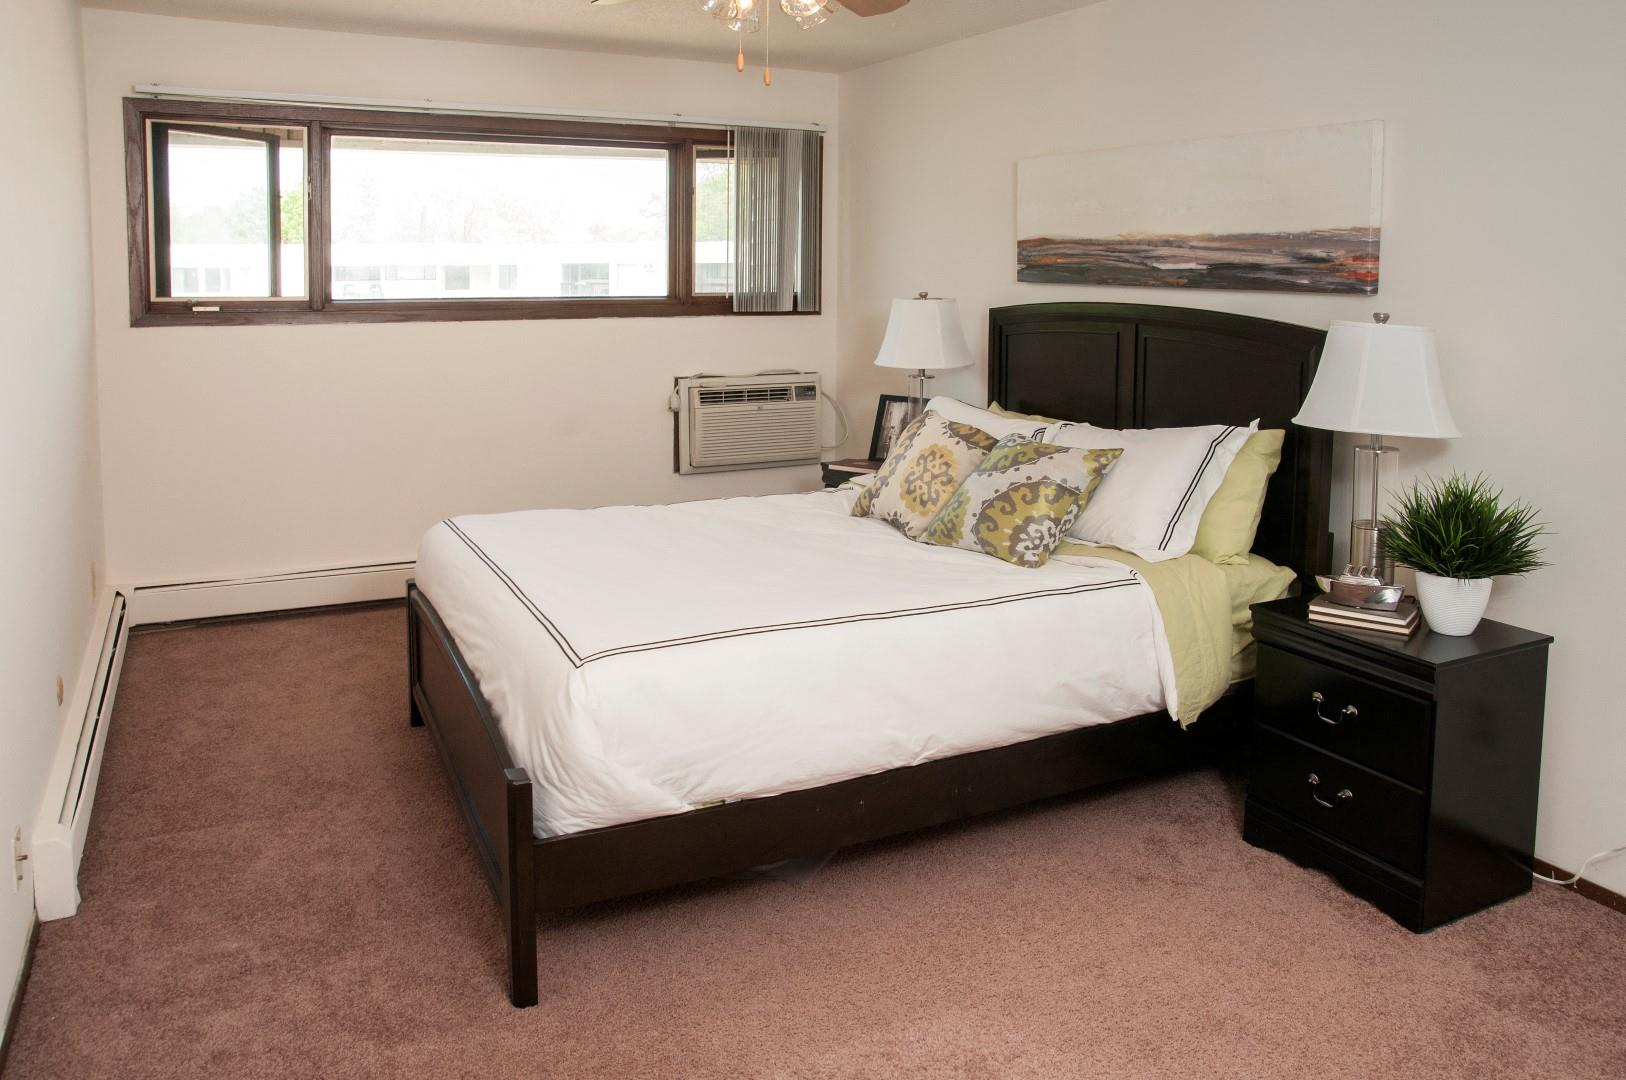 Private Master Bedroom at Hillsborough Apartments, Roseville, MN 55113